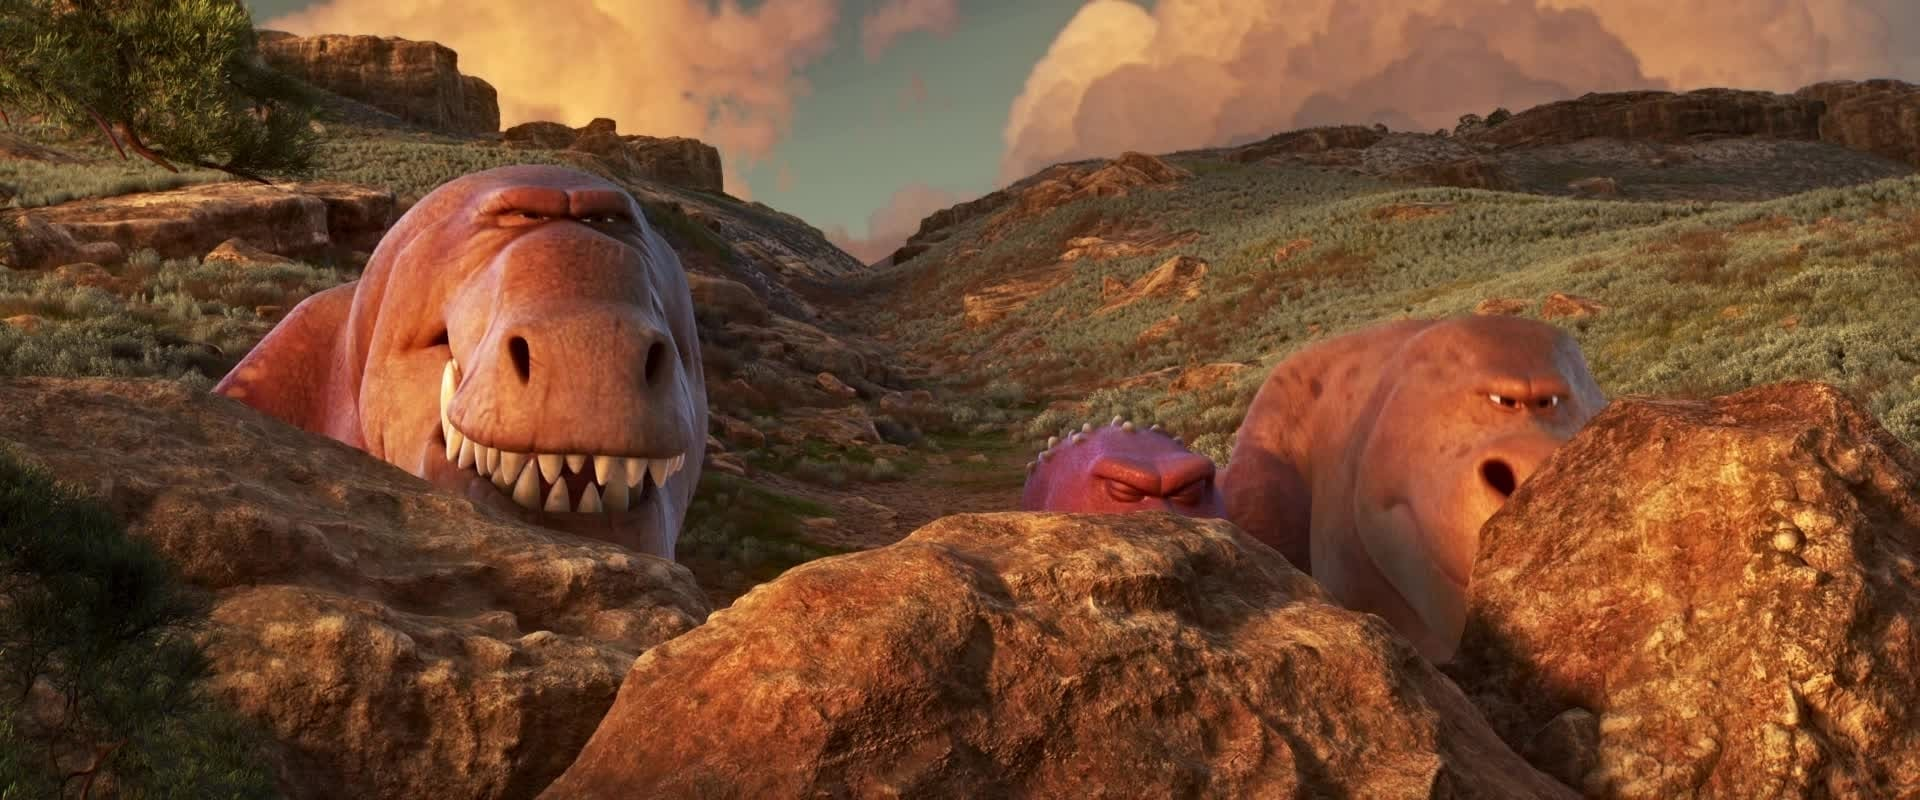 The Good Dinosaur - Extract 4